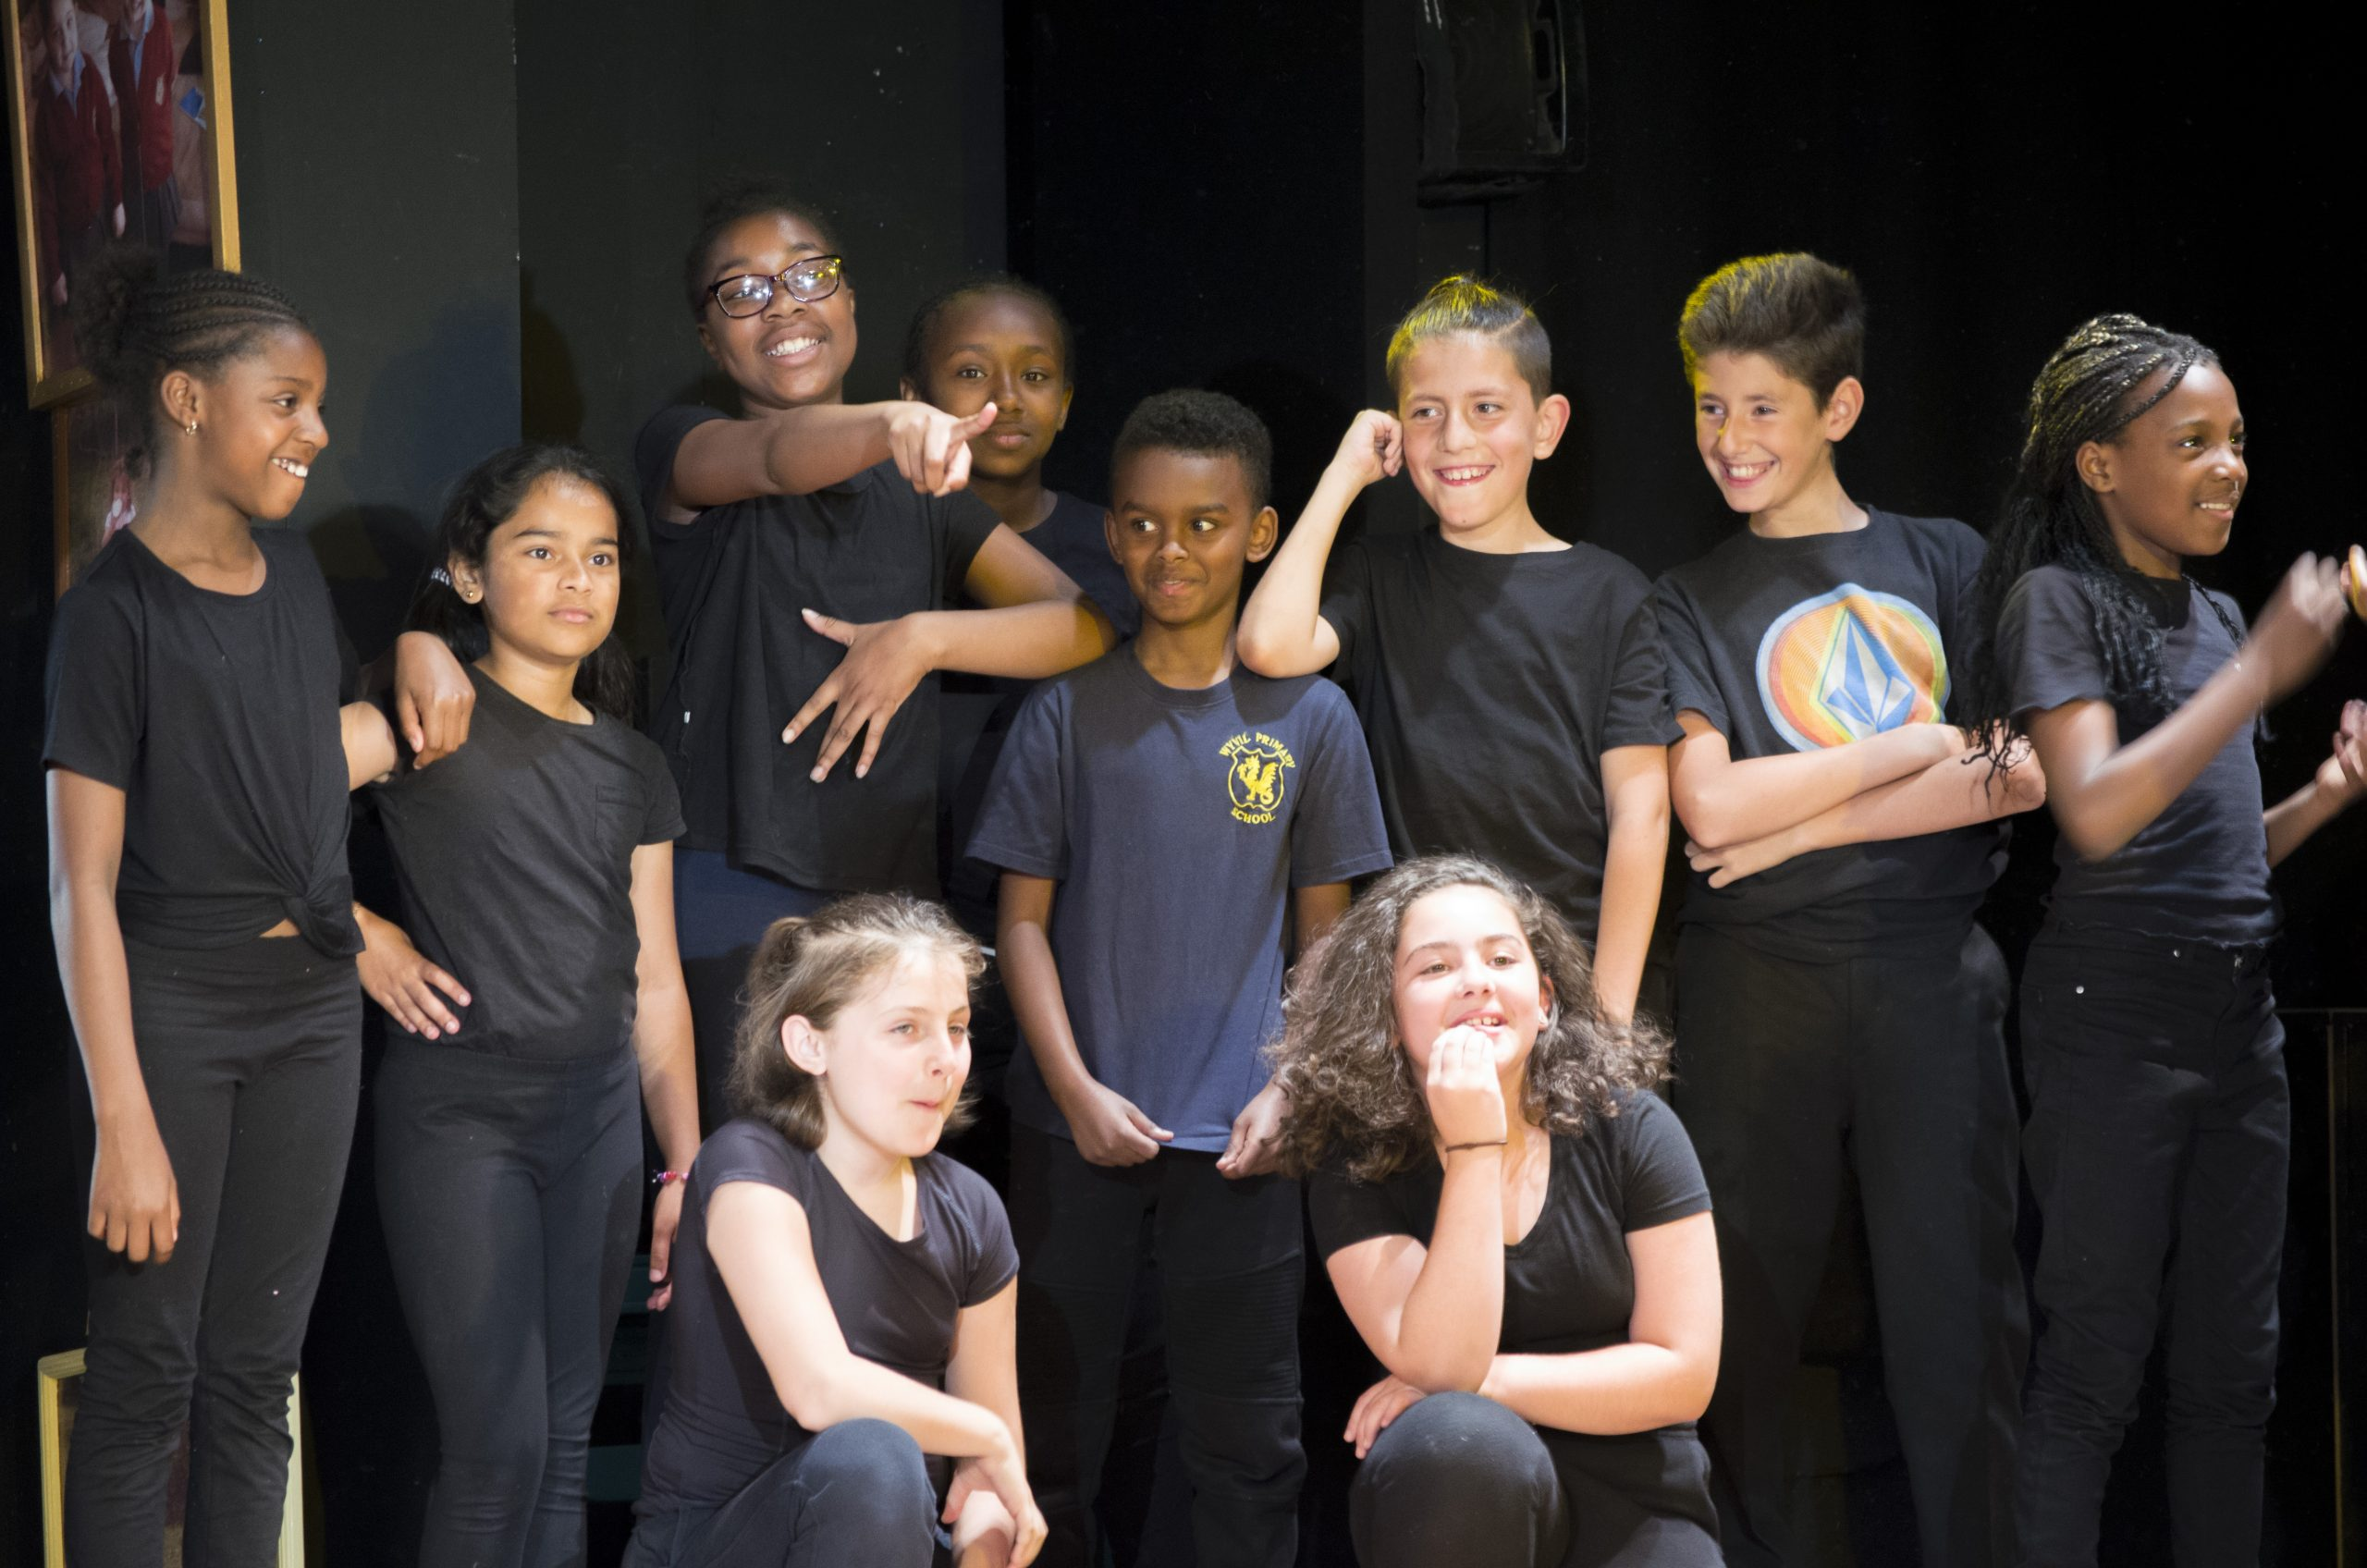 A group of children in black t-shirts form a tight group each doing a different gesture